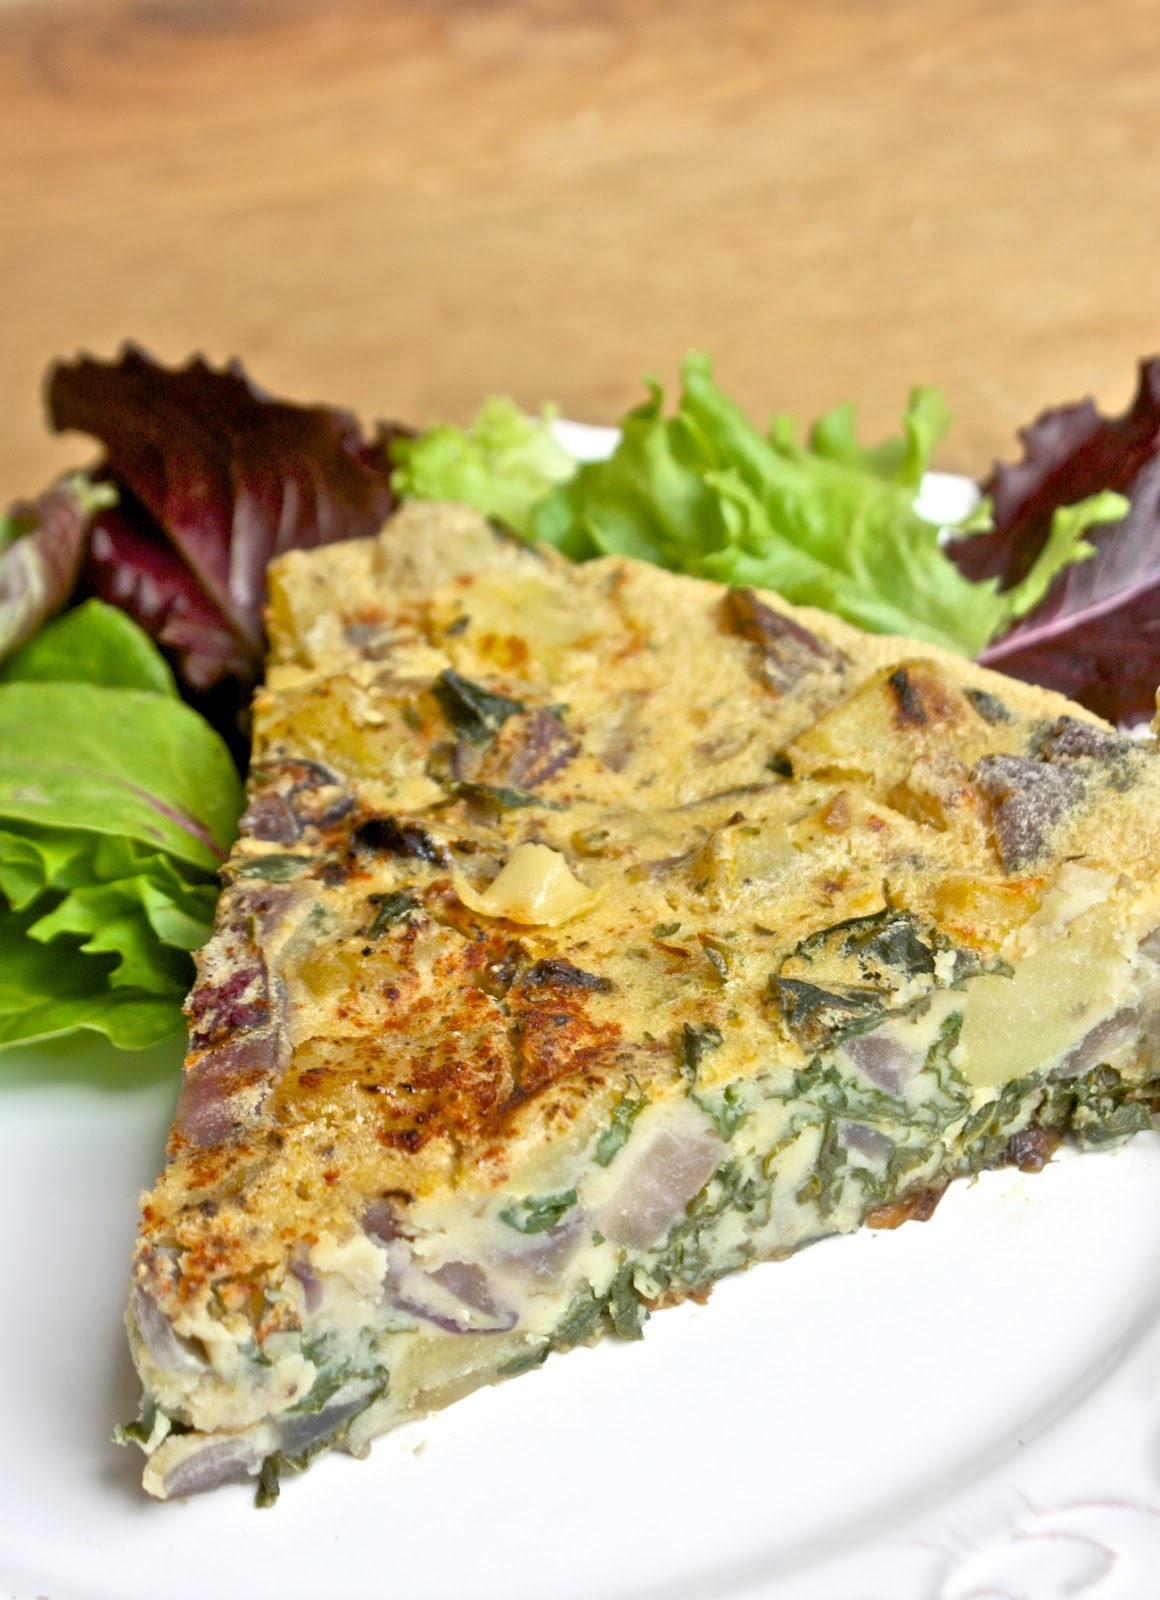 Helyn's Healthy Kitchen: Potato-Kale-Onion Frittata ~ Plant-based and ...